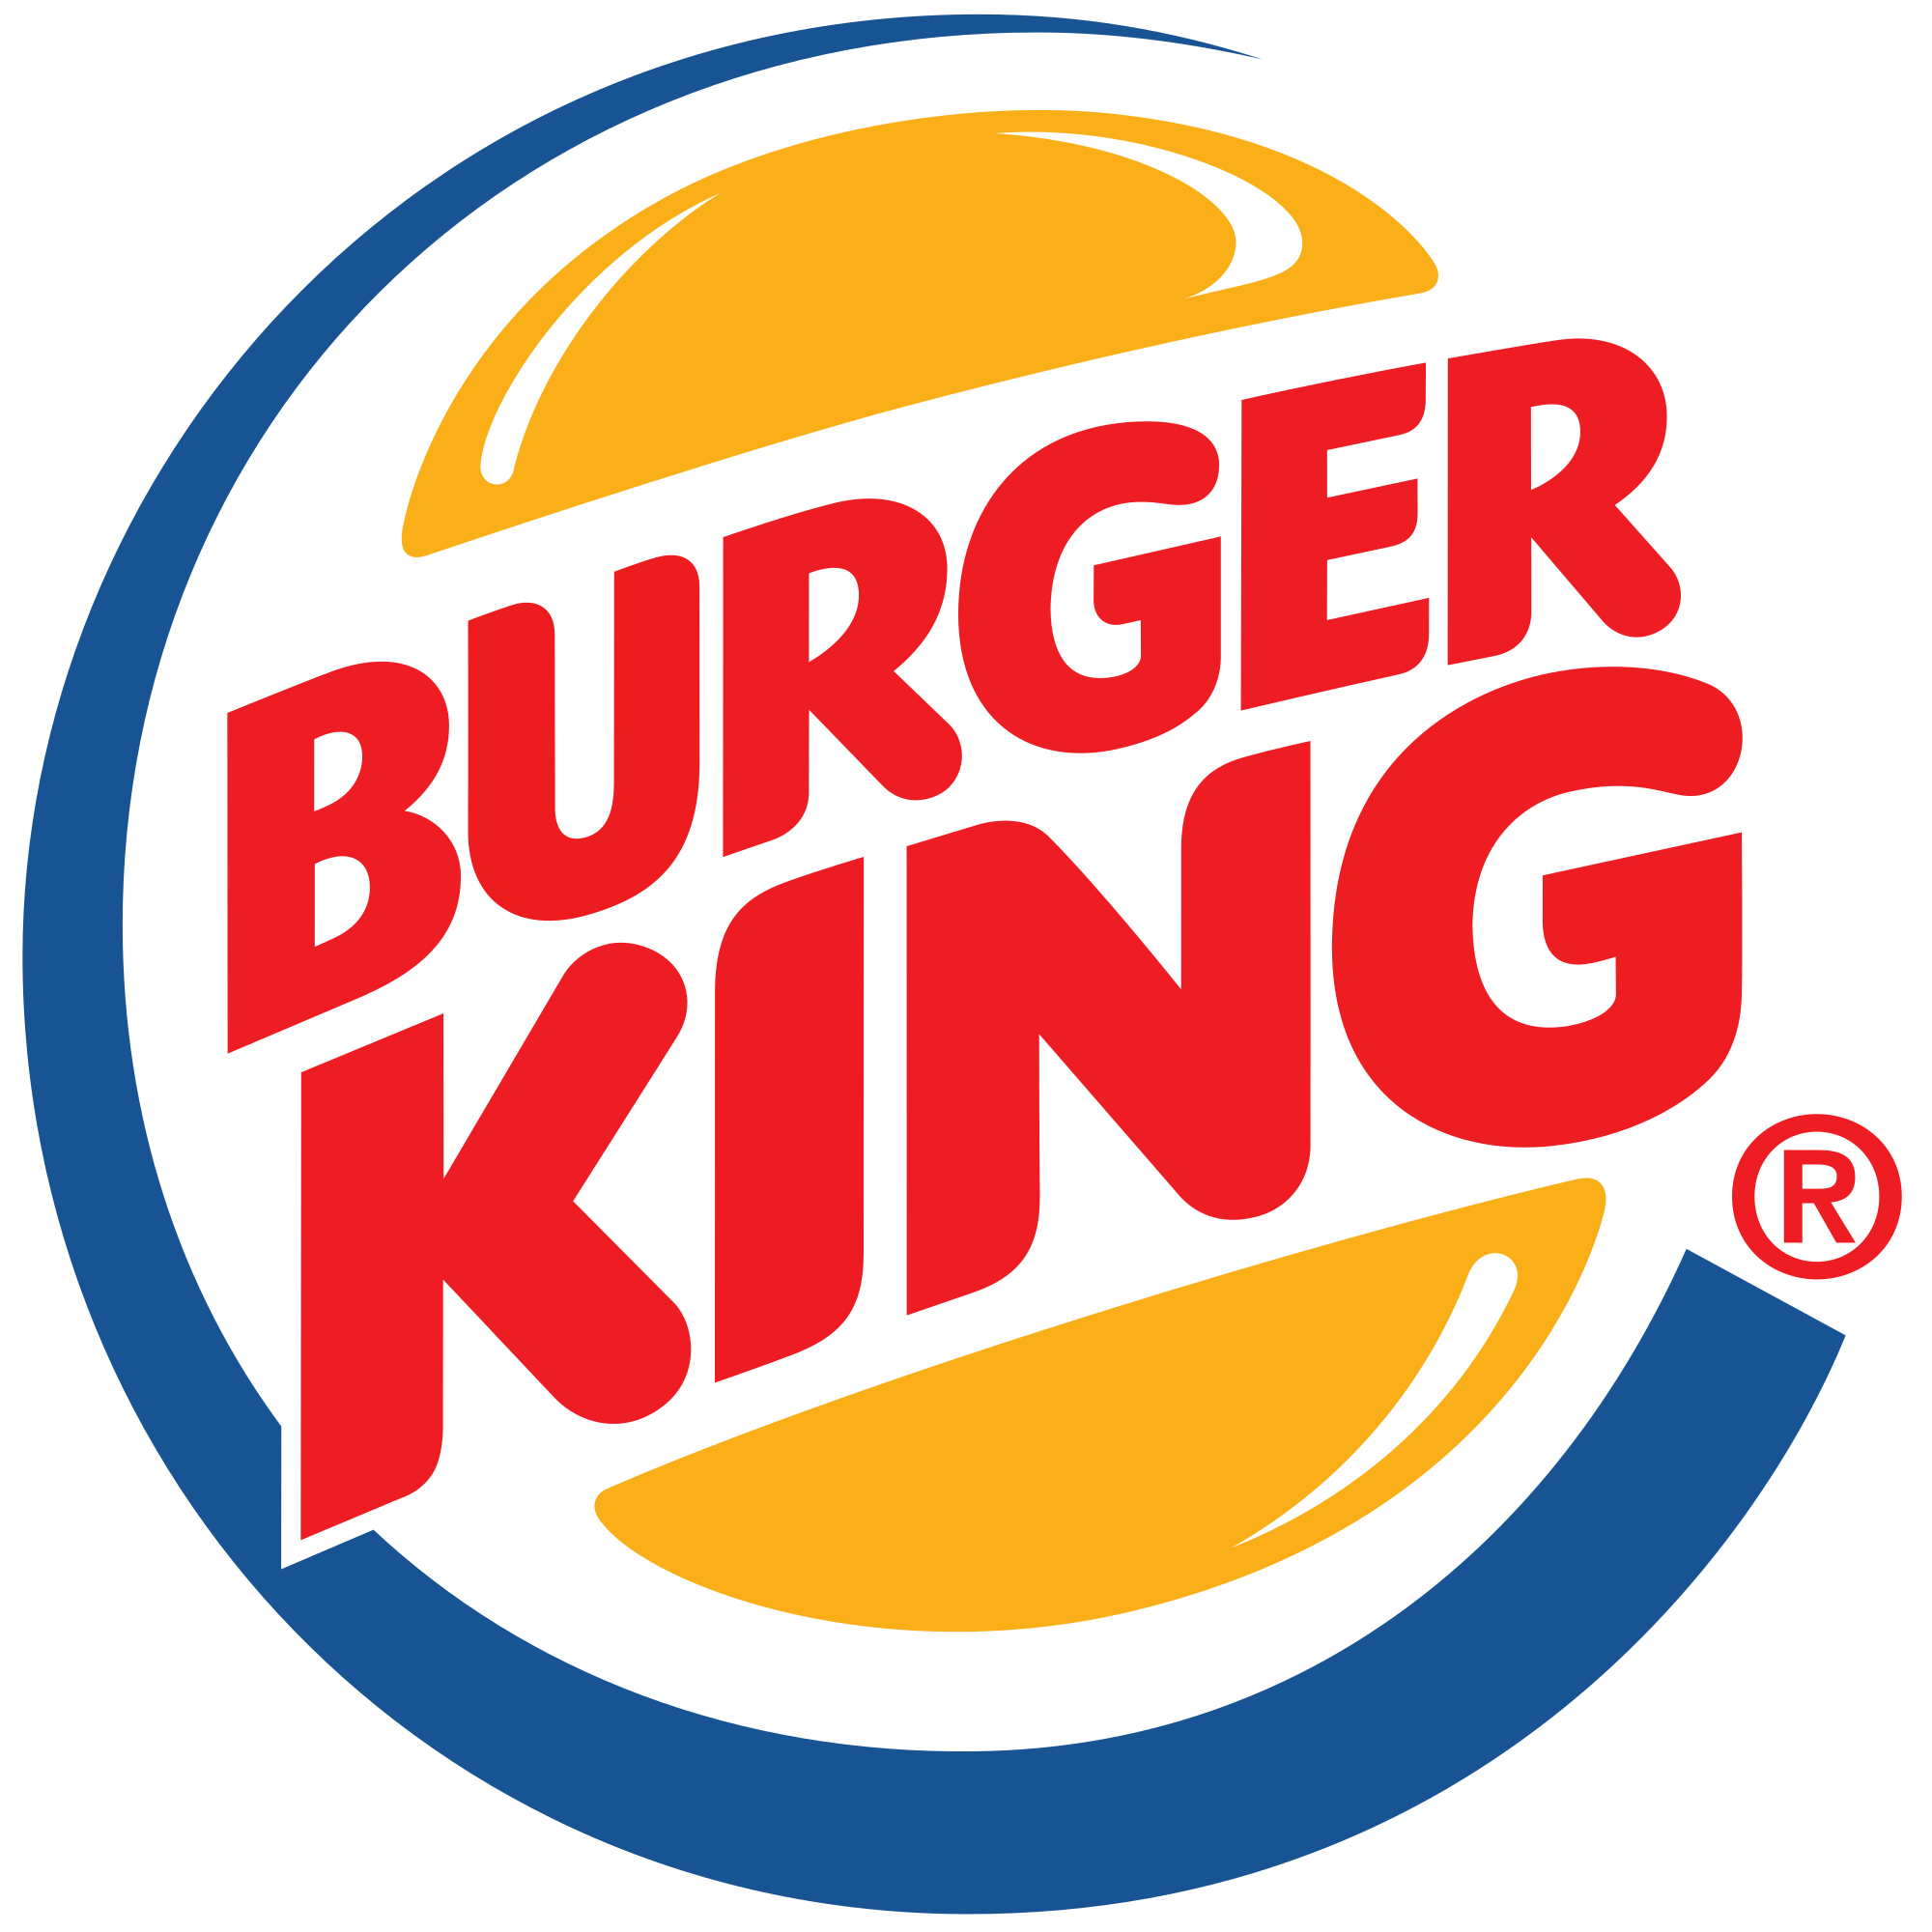 Burger King Format: PNG Image Resolution: 2000x2000. Size: 225 kb - Burger King Logo PNG